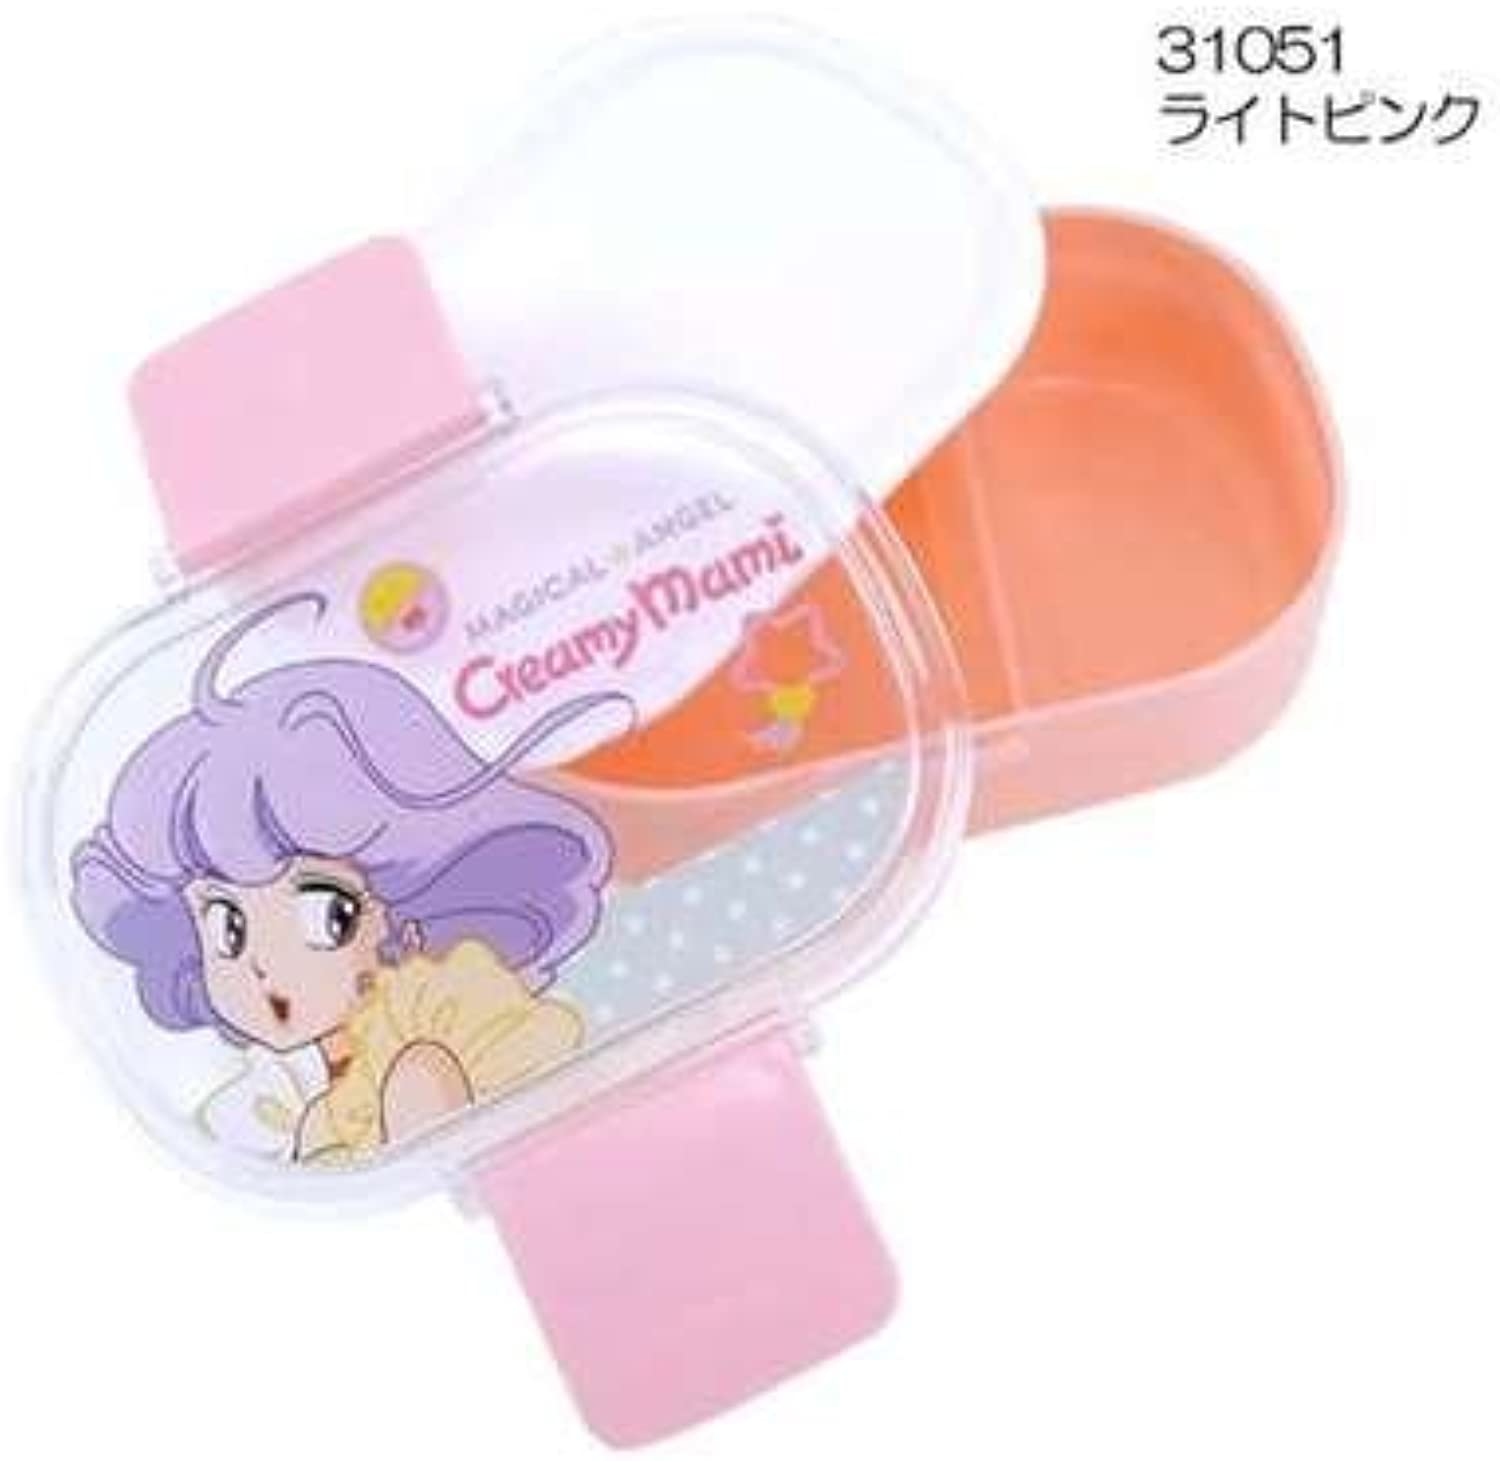 Angel Creamy Mami 1 stage light pink lunch box of magic (japan import)